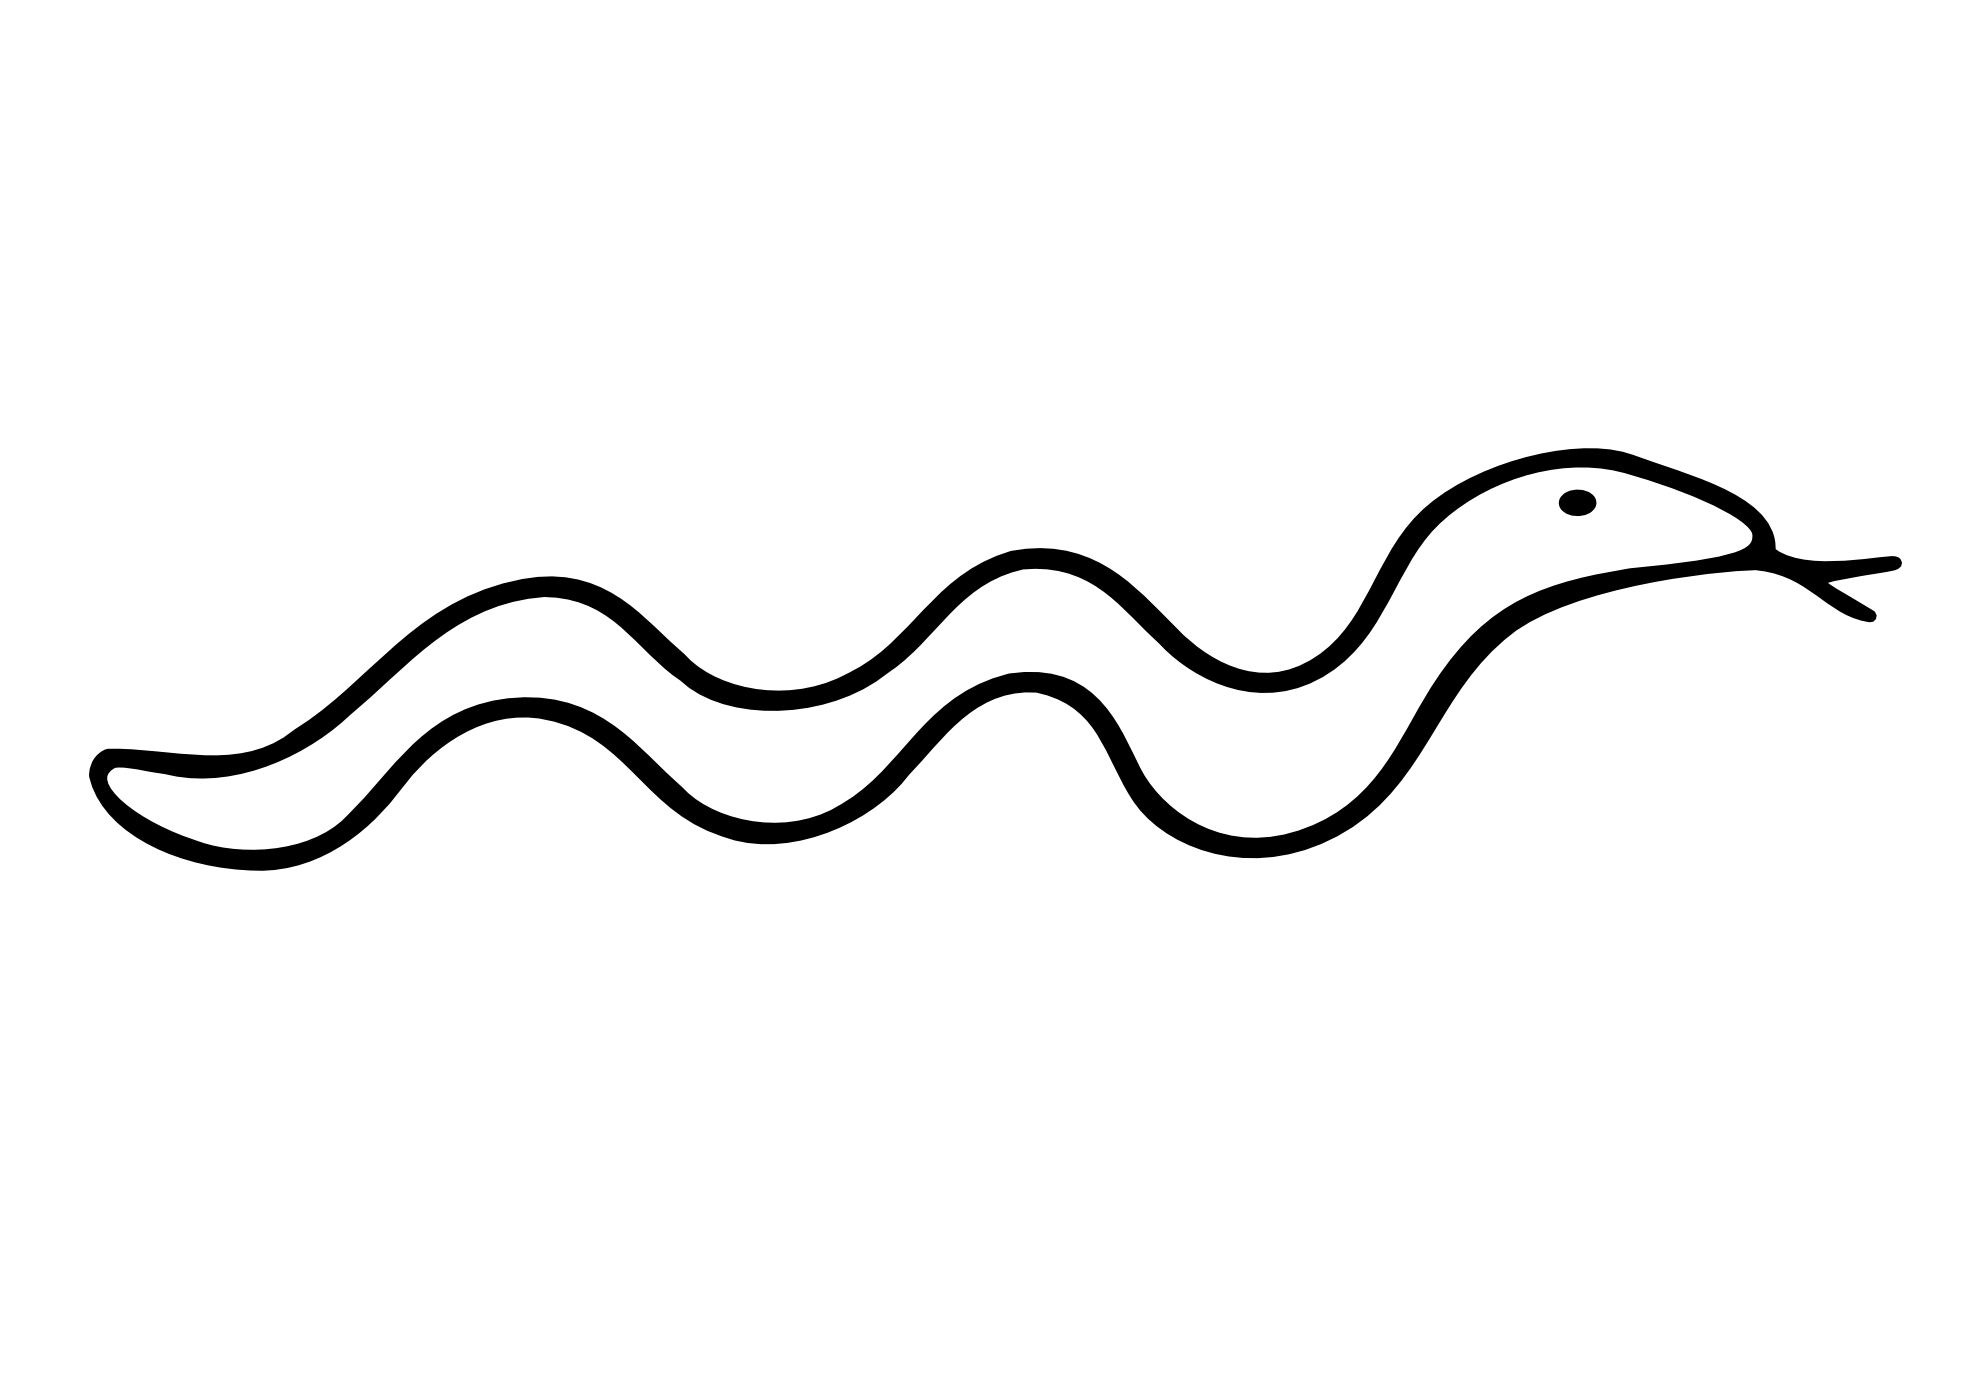 Cartoon snakes clip art. Clipart snake face